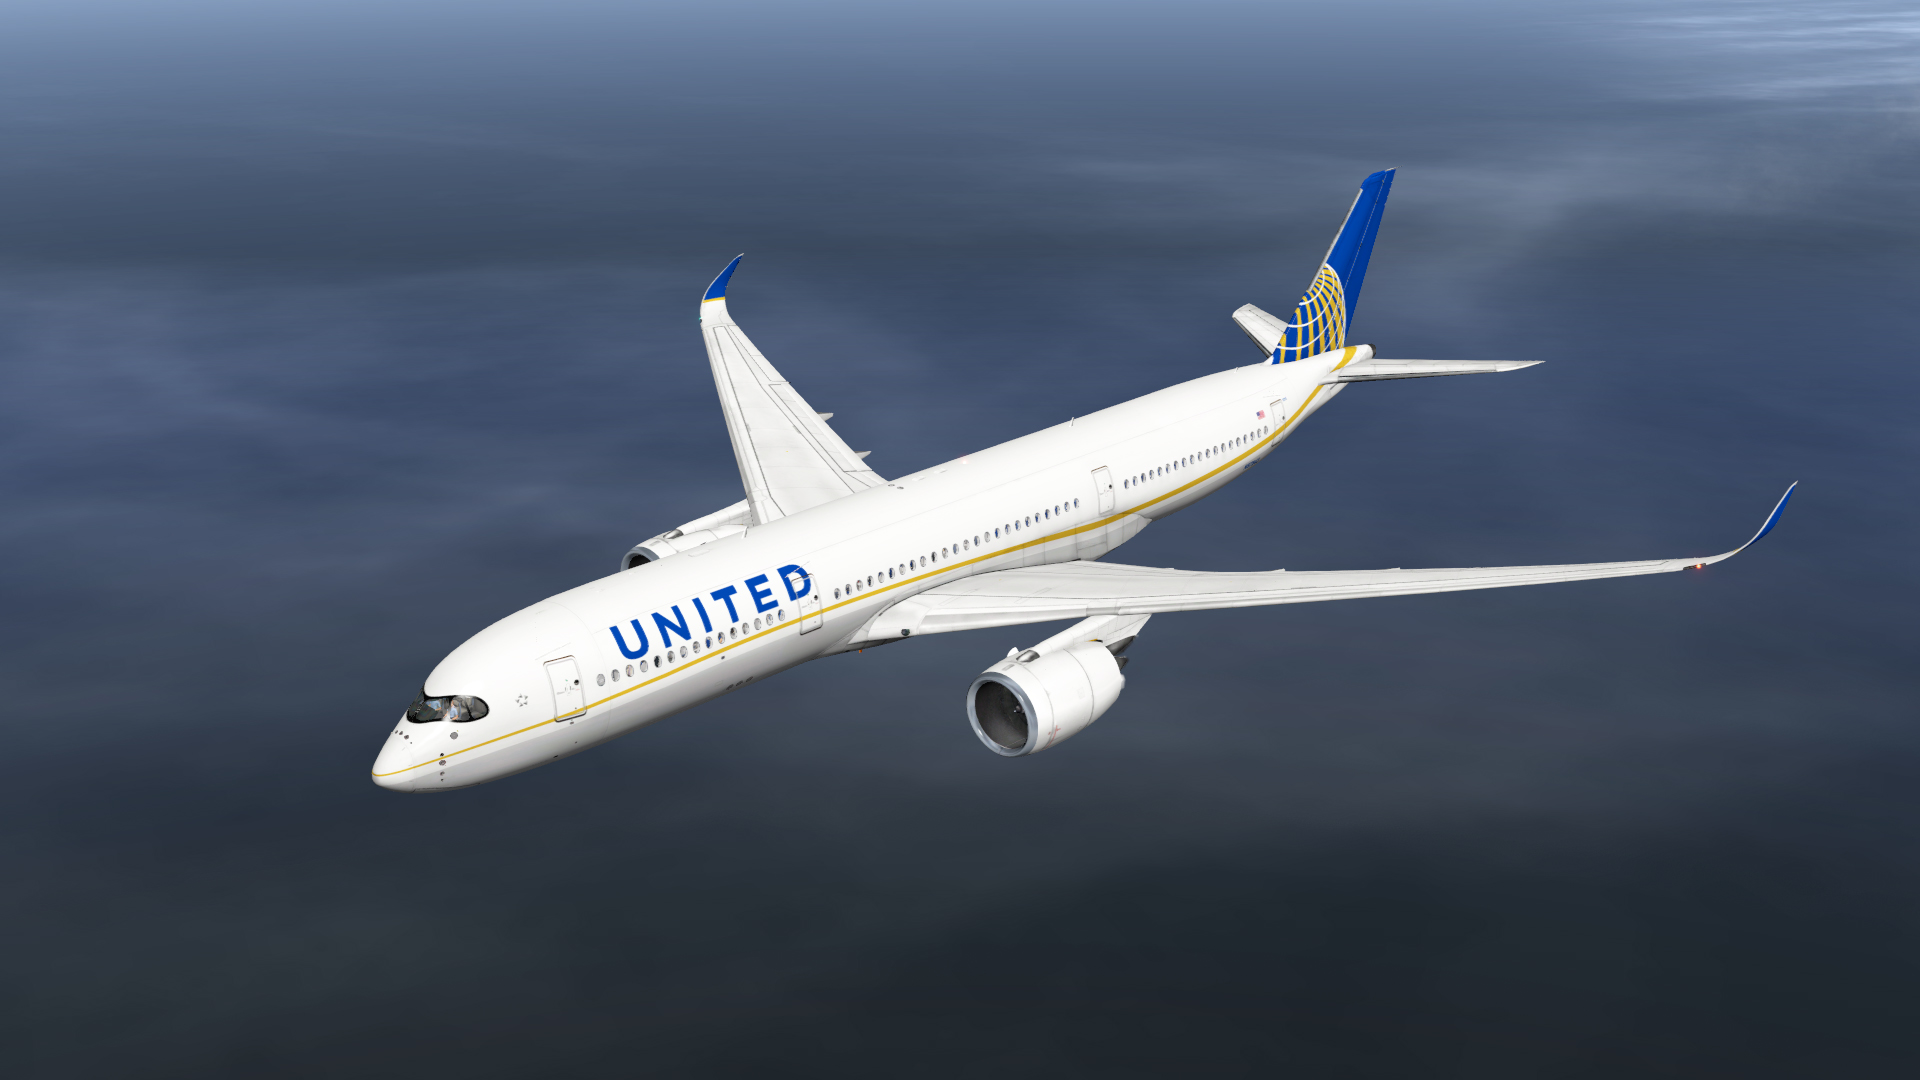 United Airlines Airbus A350-900 - Aircraft Skins - Liveries - X